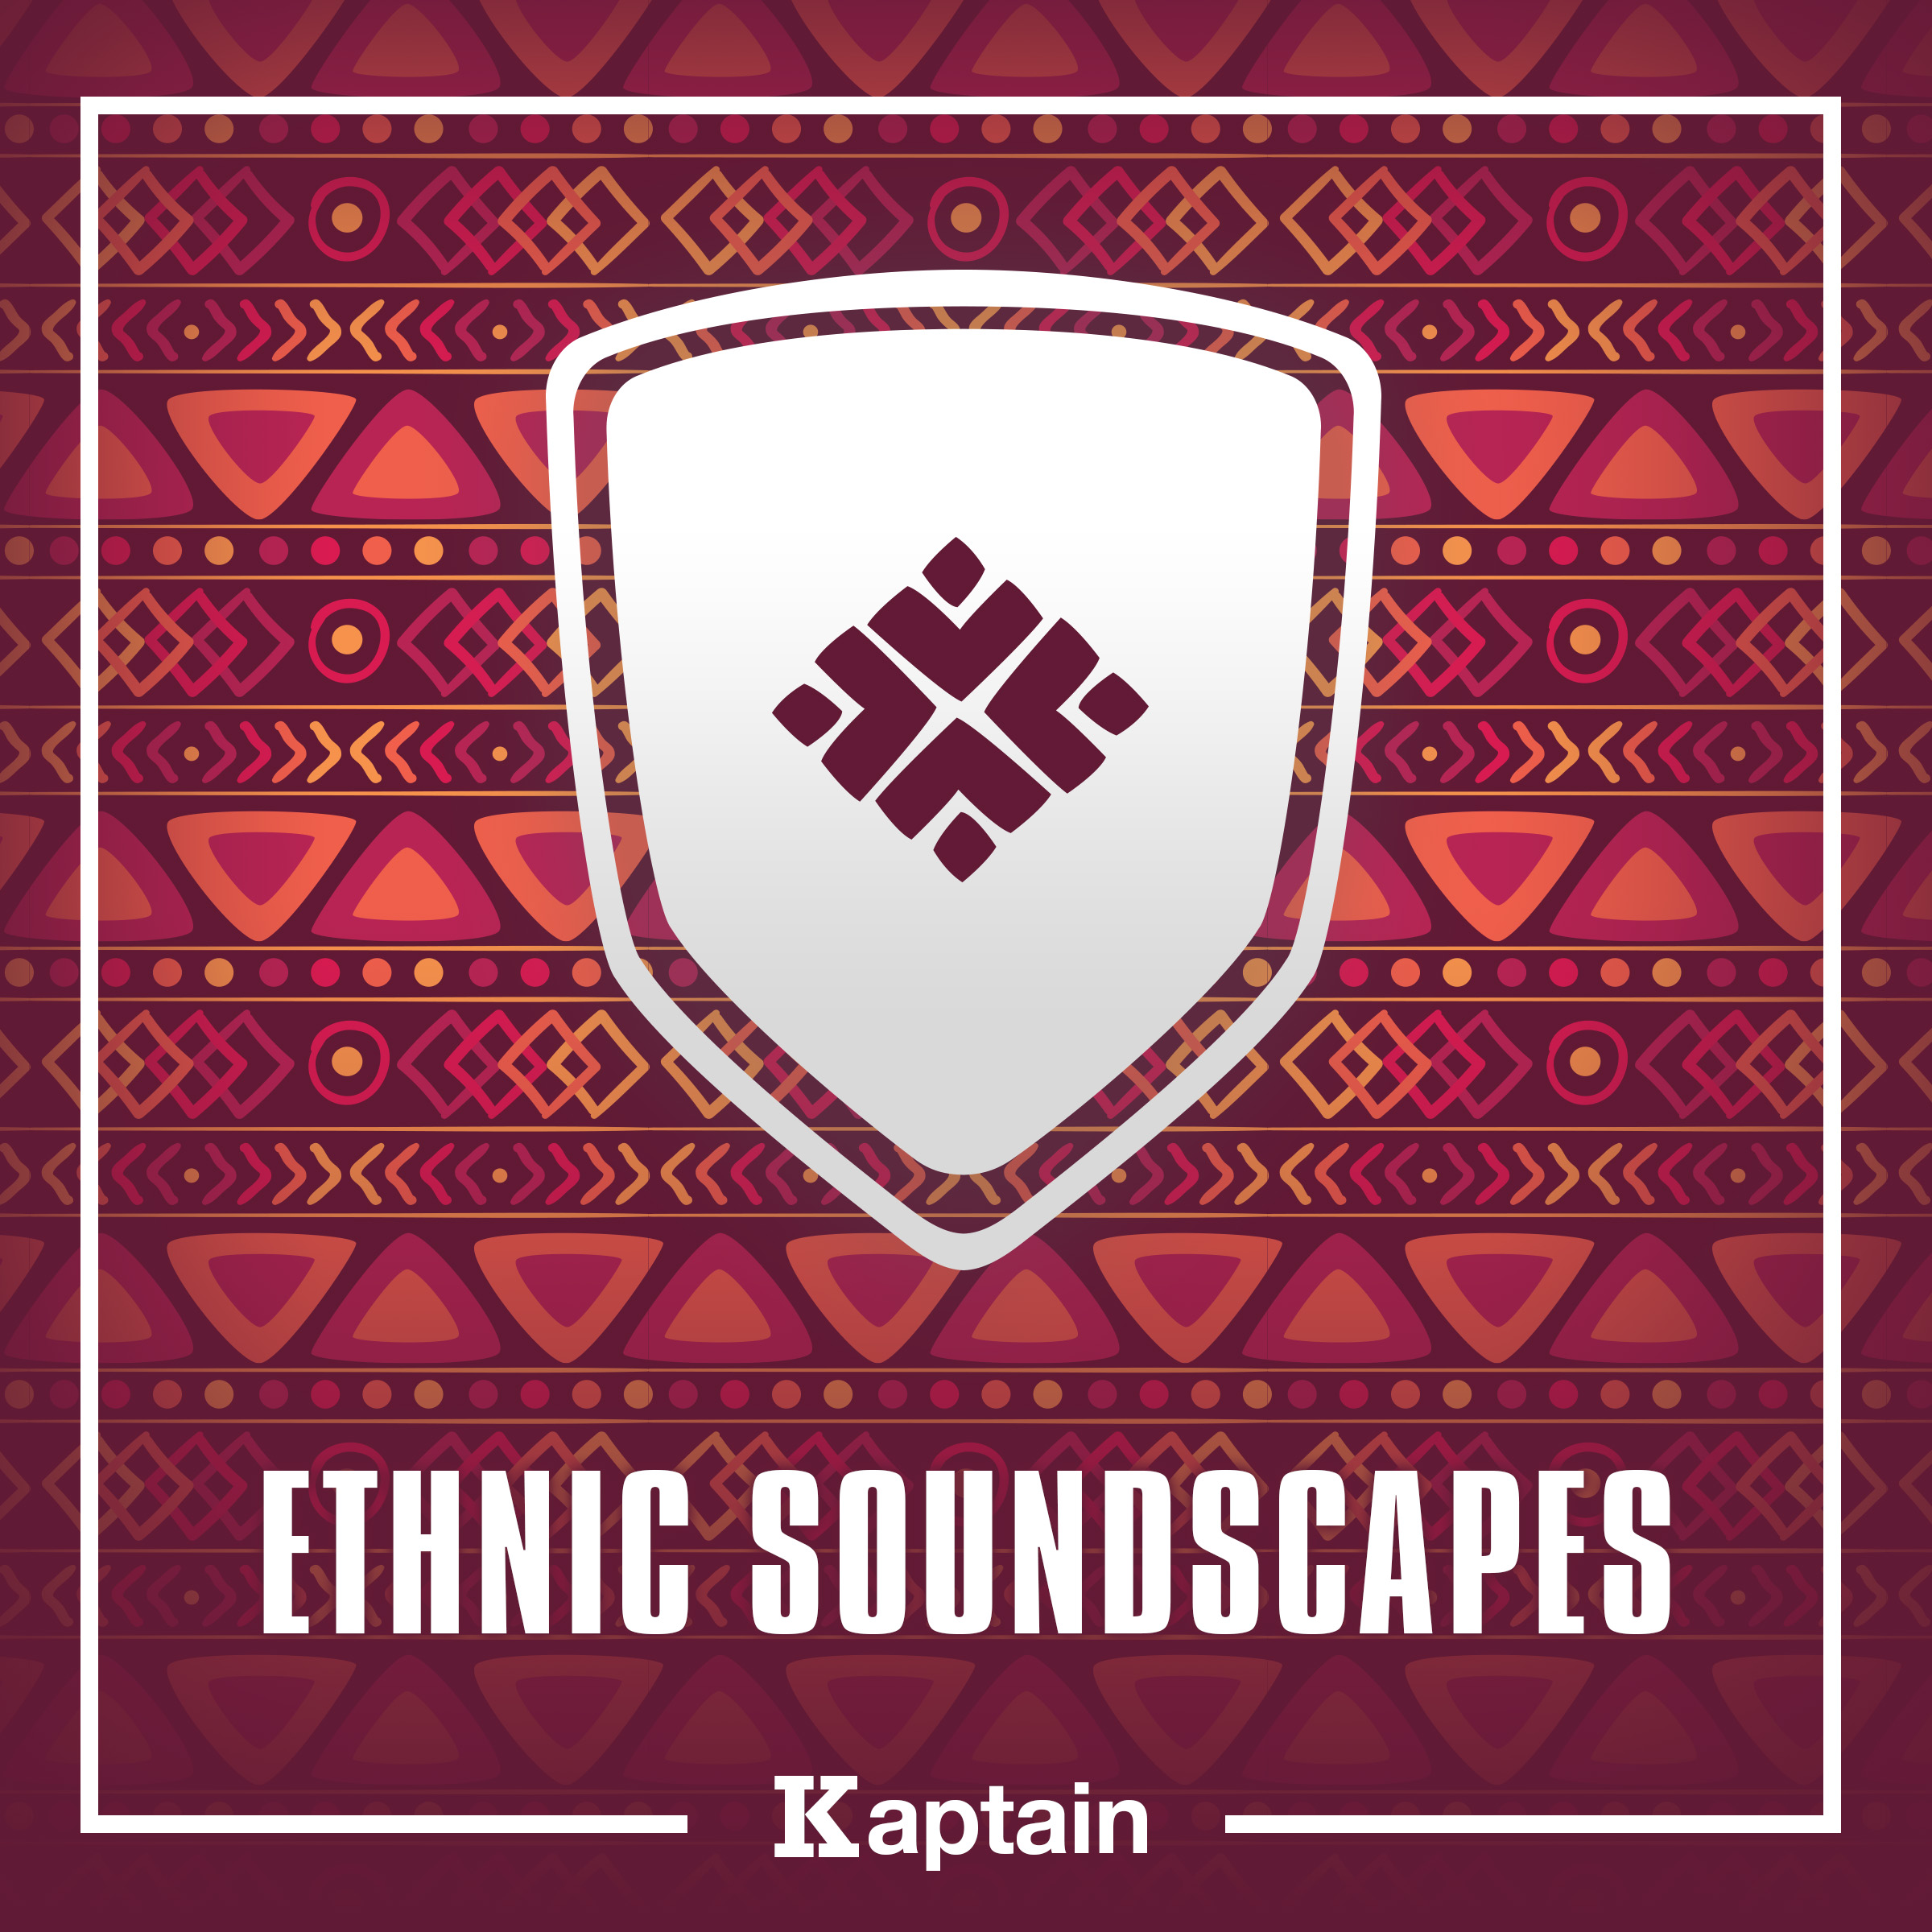 Ethnic Soundscapes